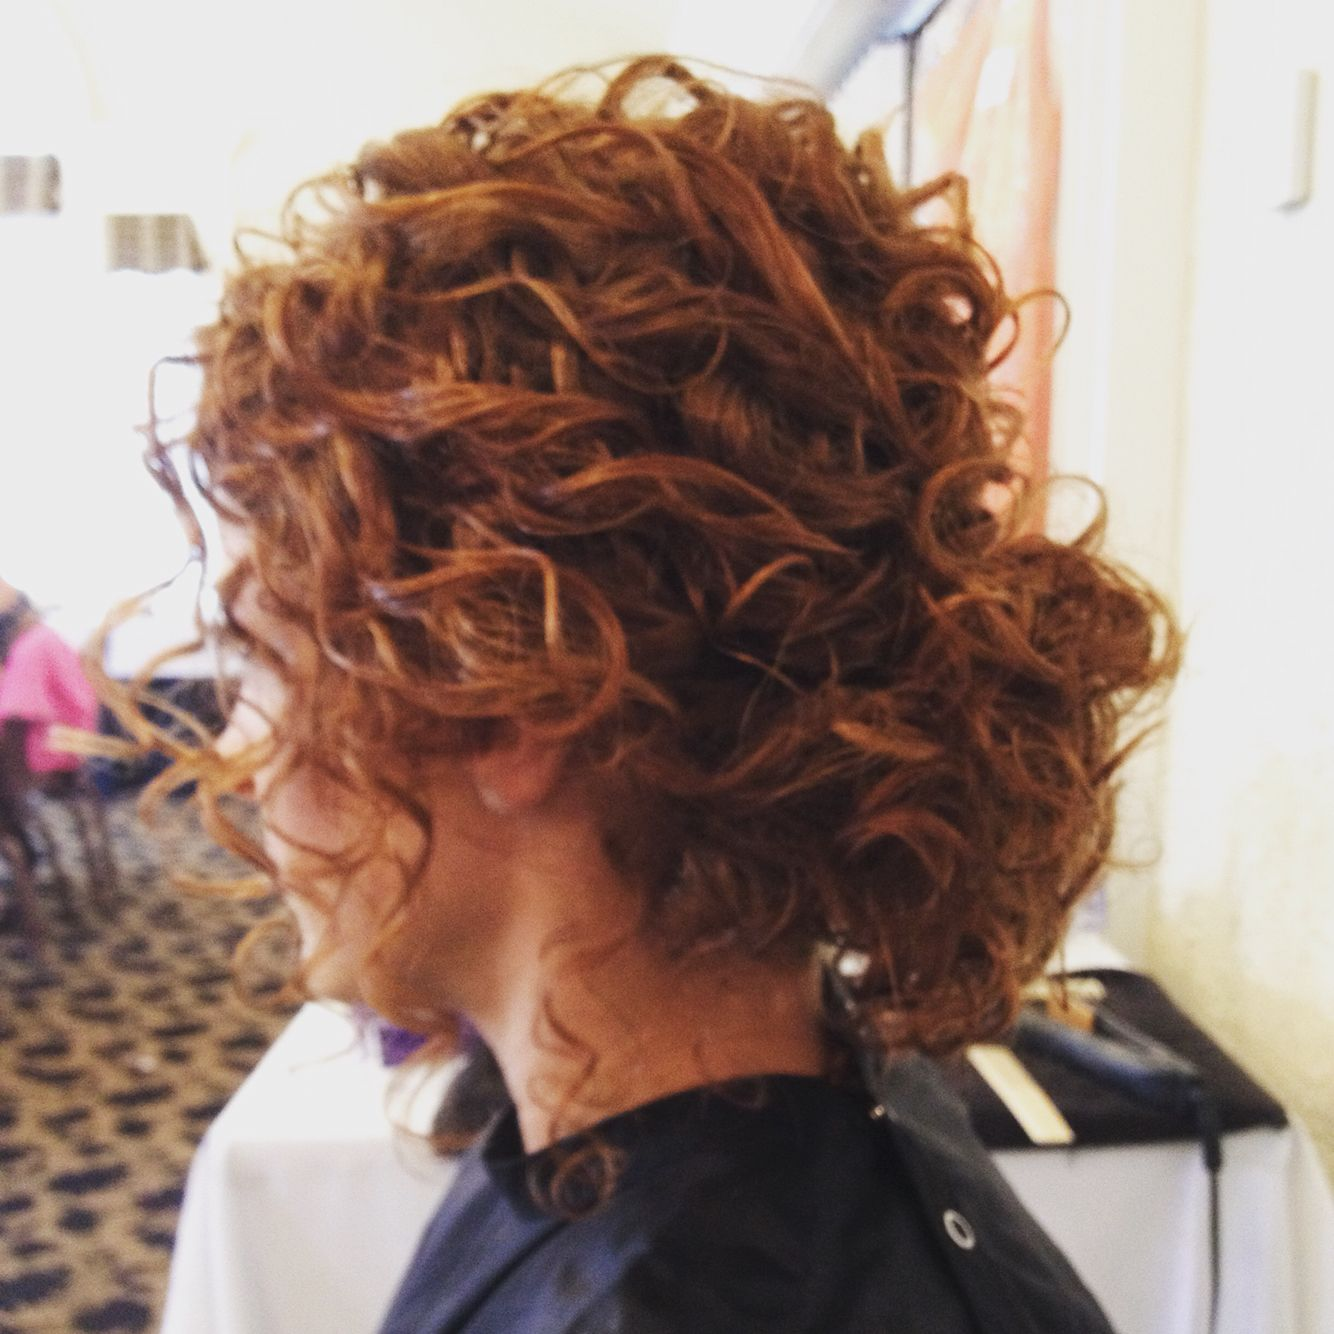 Naturally Curly Hair Low Bun Updo Curly Hair Styles Naturally Medium Hair Styles Curly Hair Styles